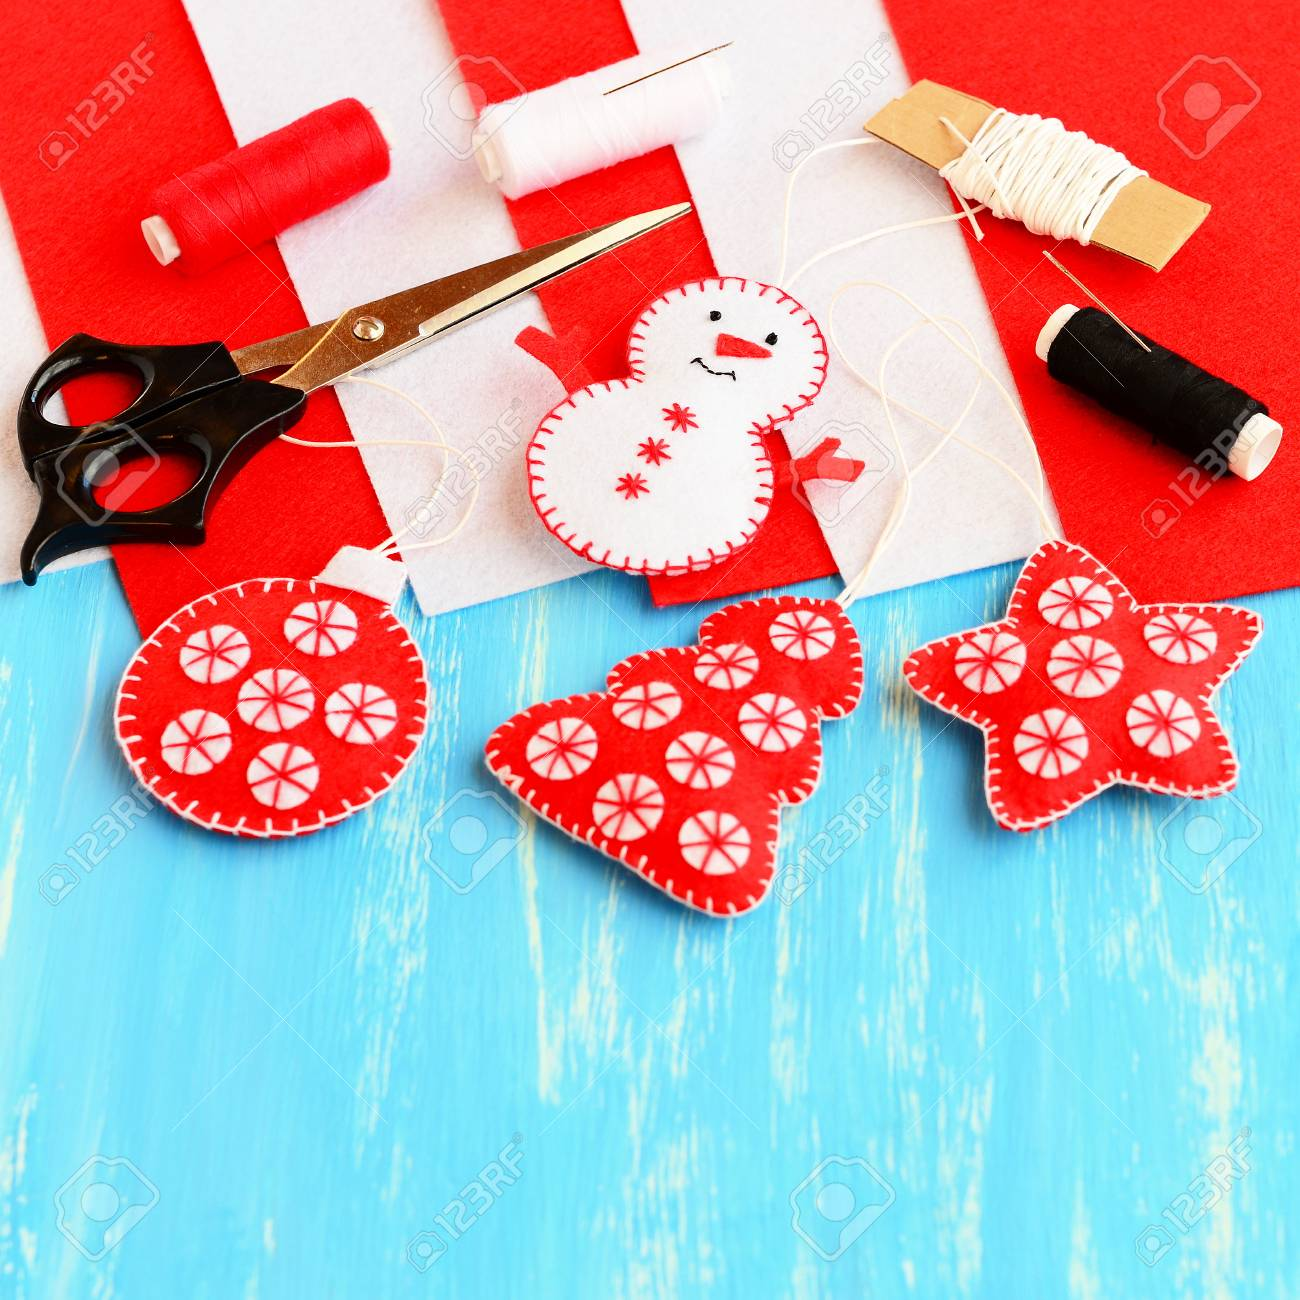 Cute Christmas Tree Decorations Felt Snowman Stock Photo Picture And Royalty Free Image 67180898